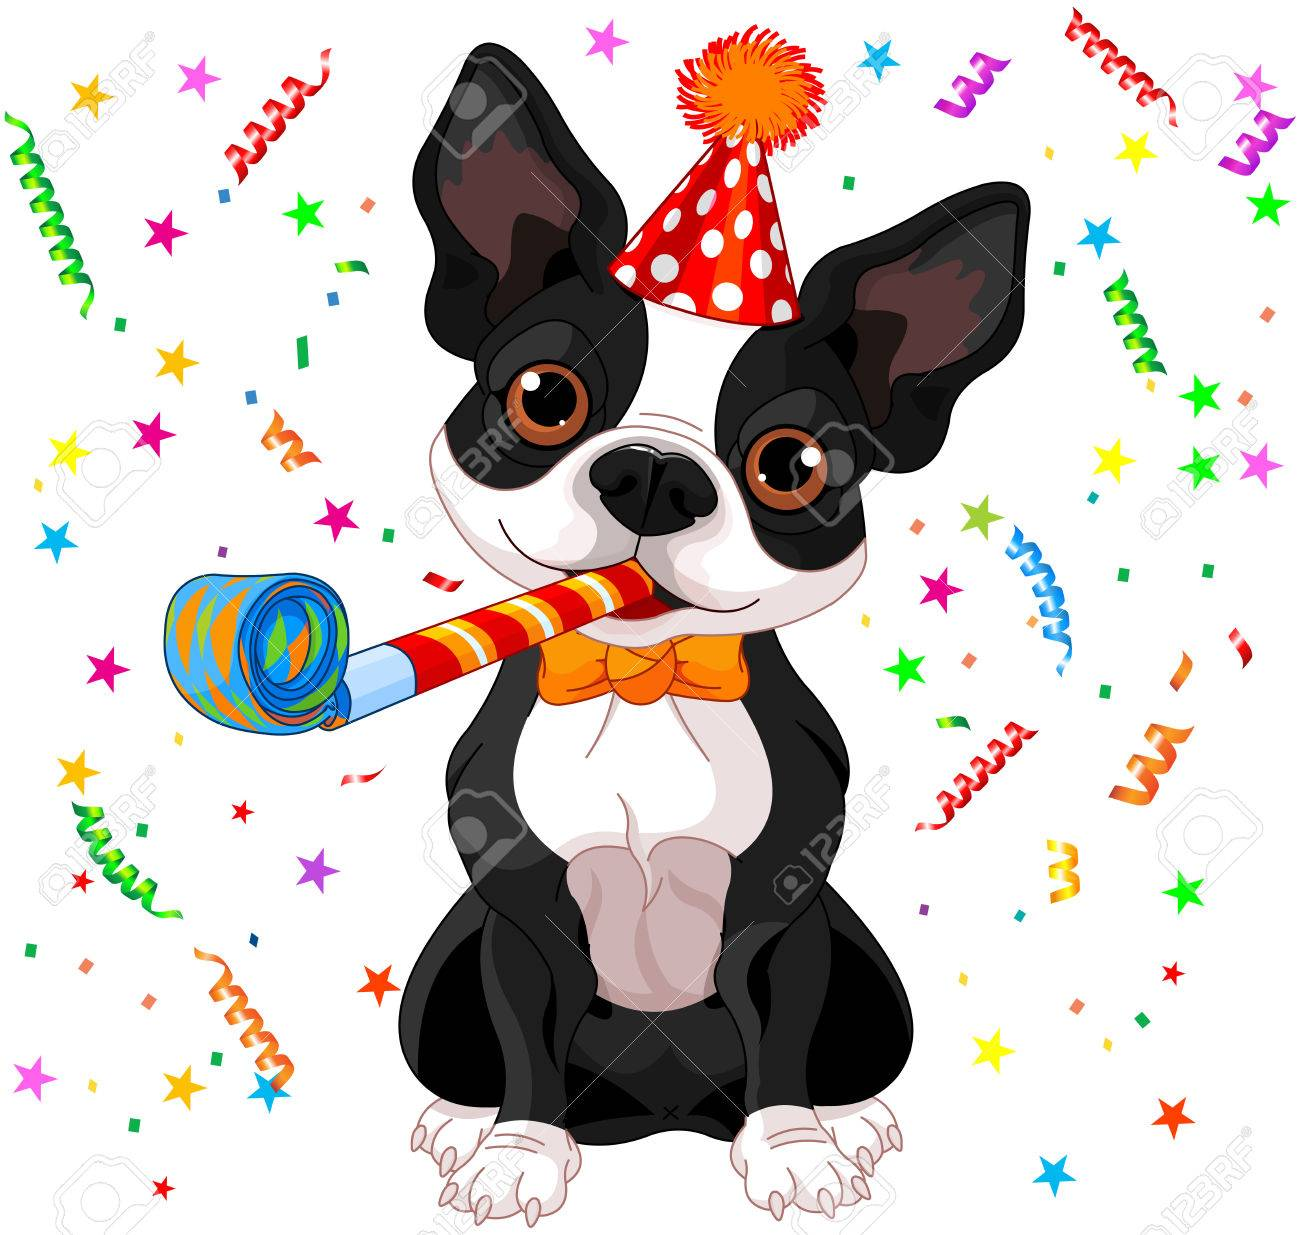 Travail au troupeau - Page 5 35588778-illustration-of-cute-boston-terrier-celebrating